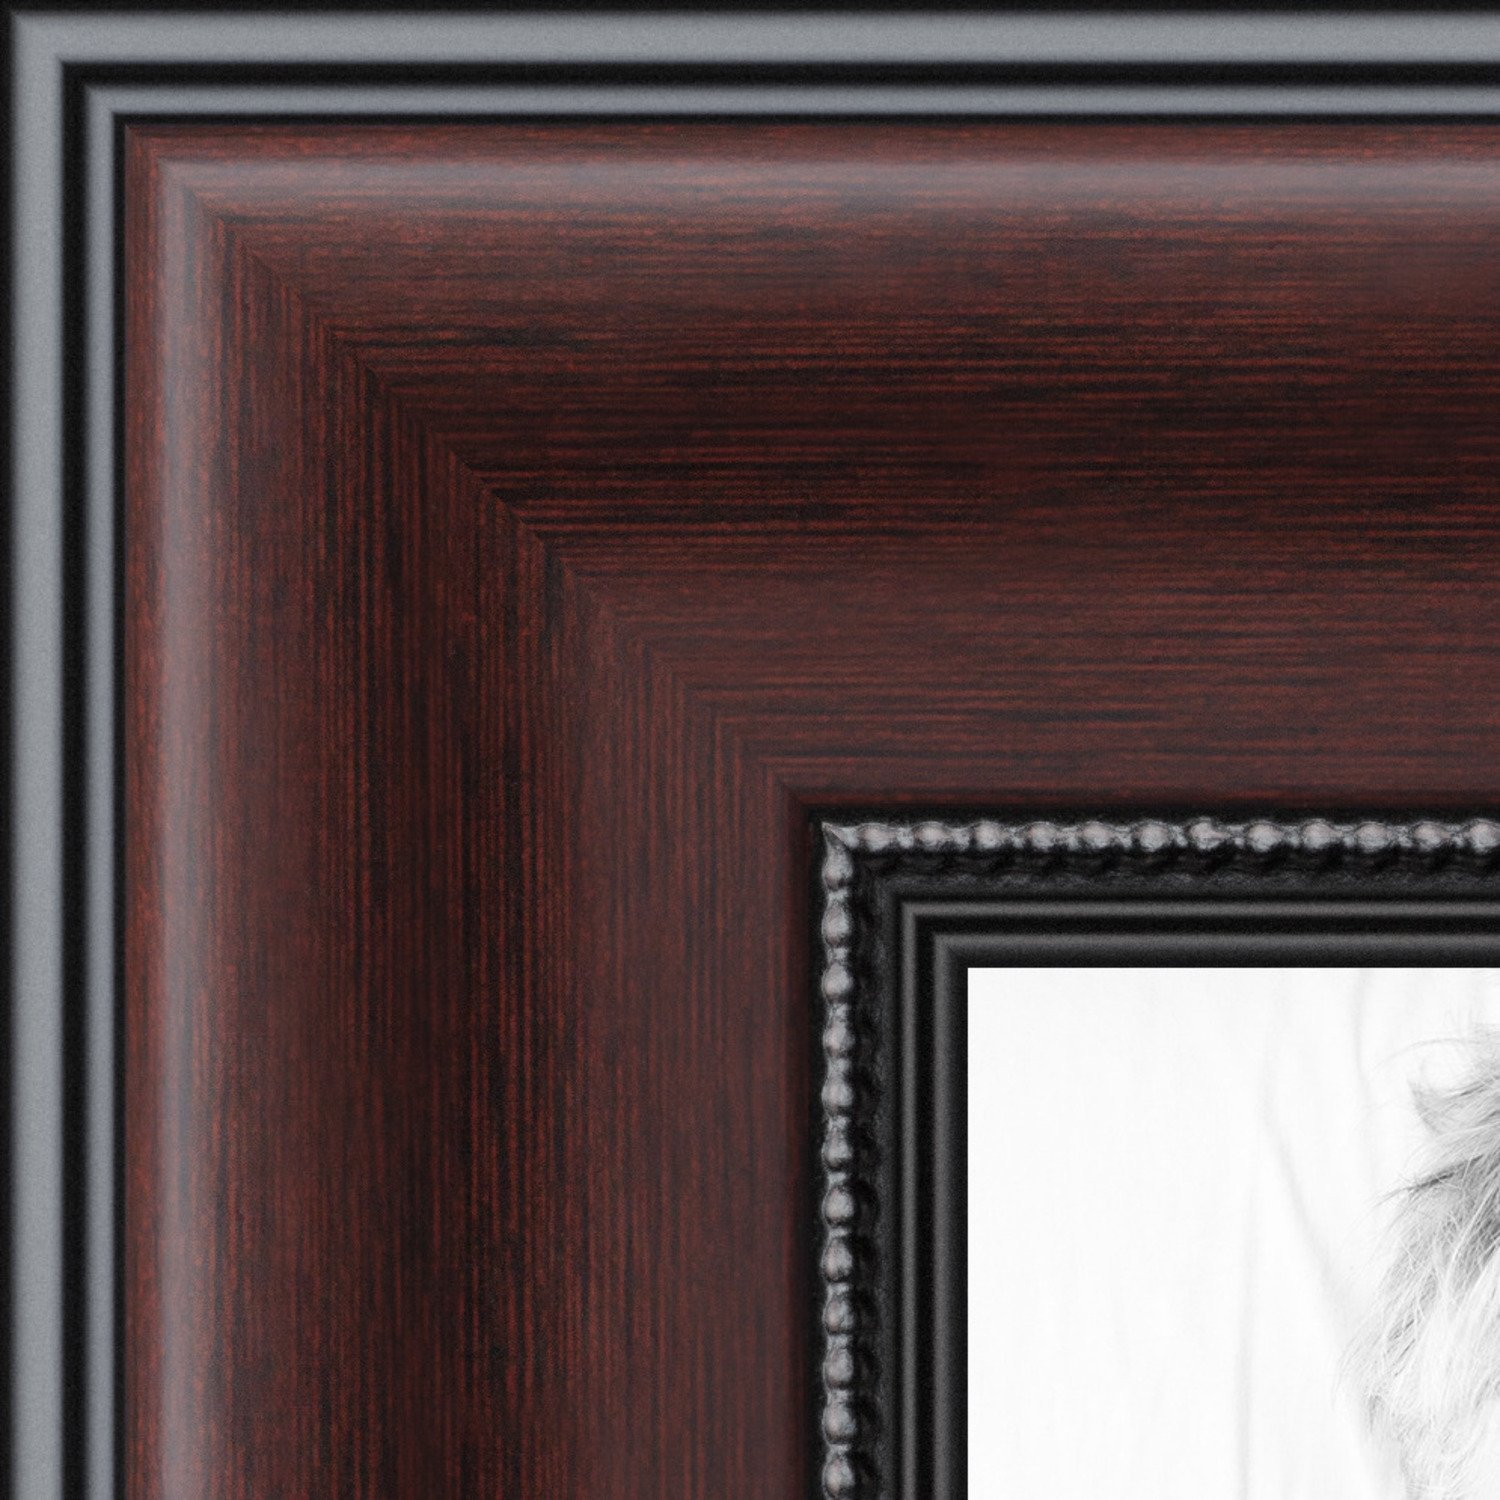 Buy Arttoframes 23x35 Inch Mahogany And Burgundy With Beaded Lip